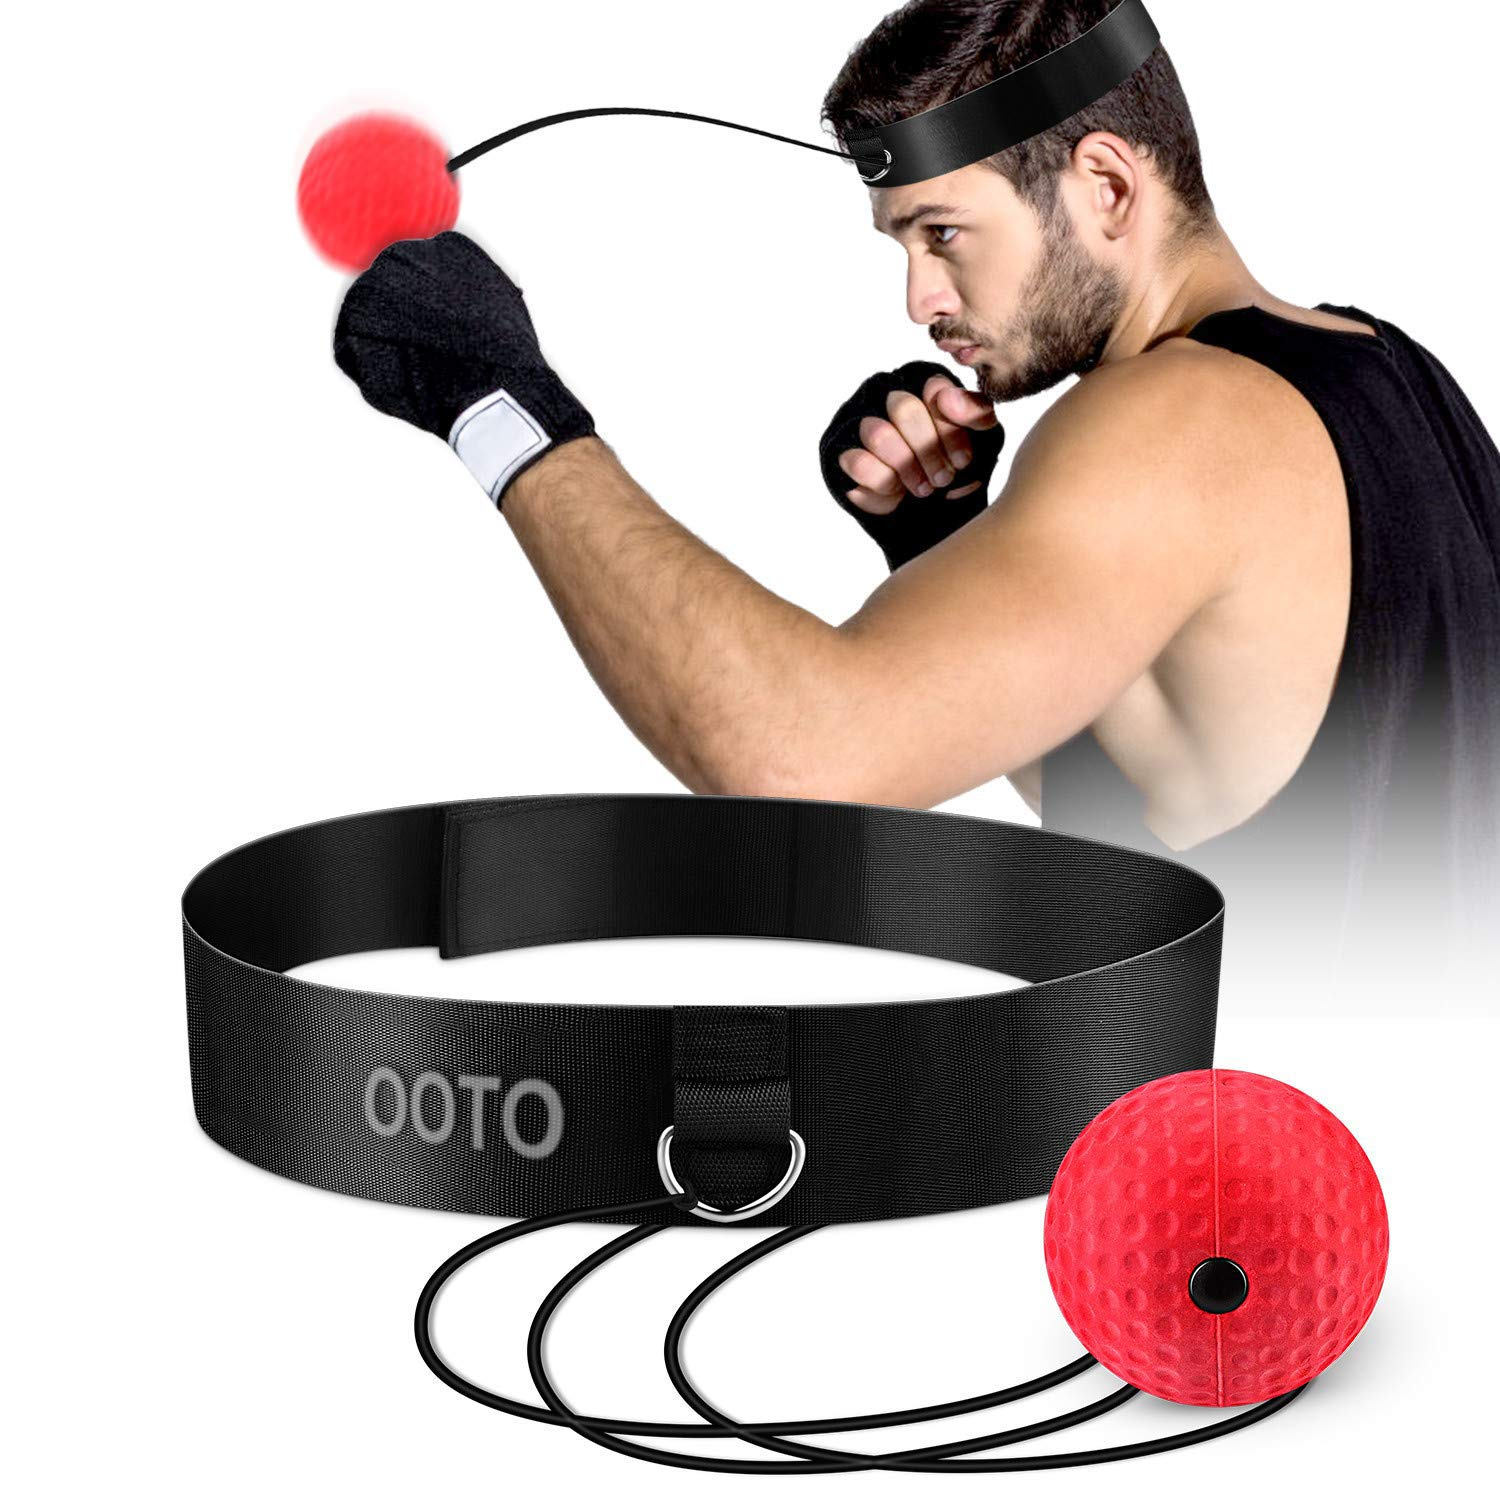 Hand Eye Coordination and Punching Accuracy For Adult//Kids Upgraded Boxing Reflex Ball Boxing Training Ball3 Speed Levels Boxing Fight Balls With Soft Perspiration Headband for improving Speed